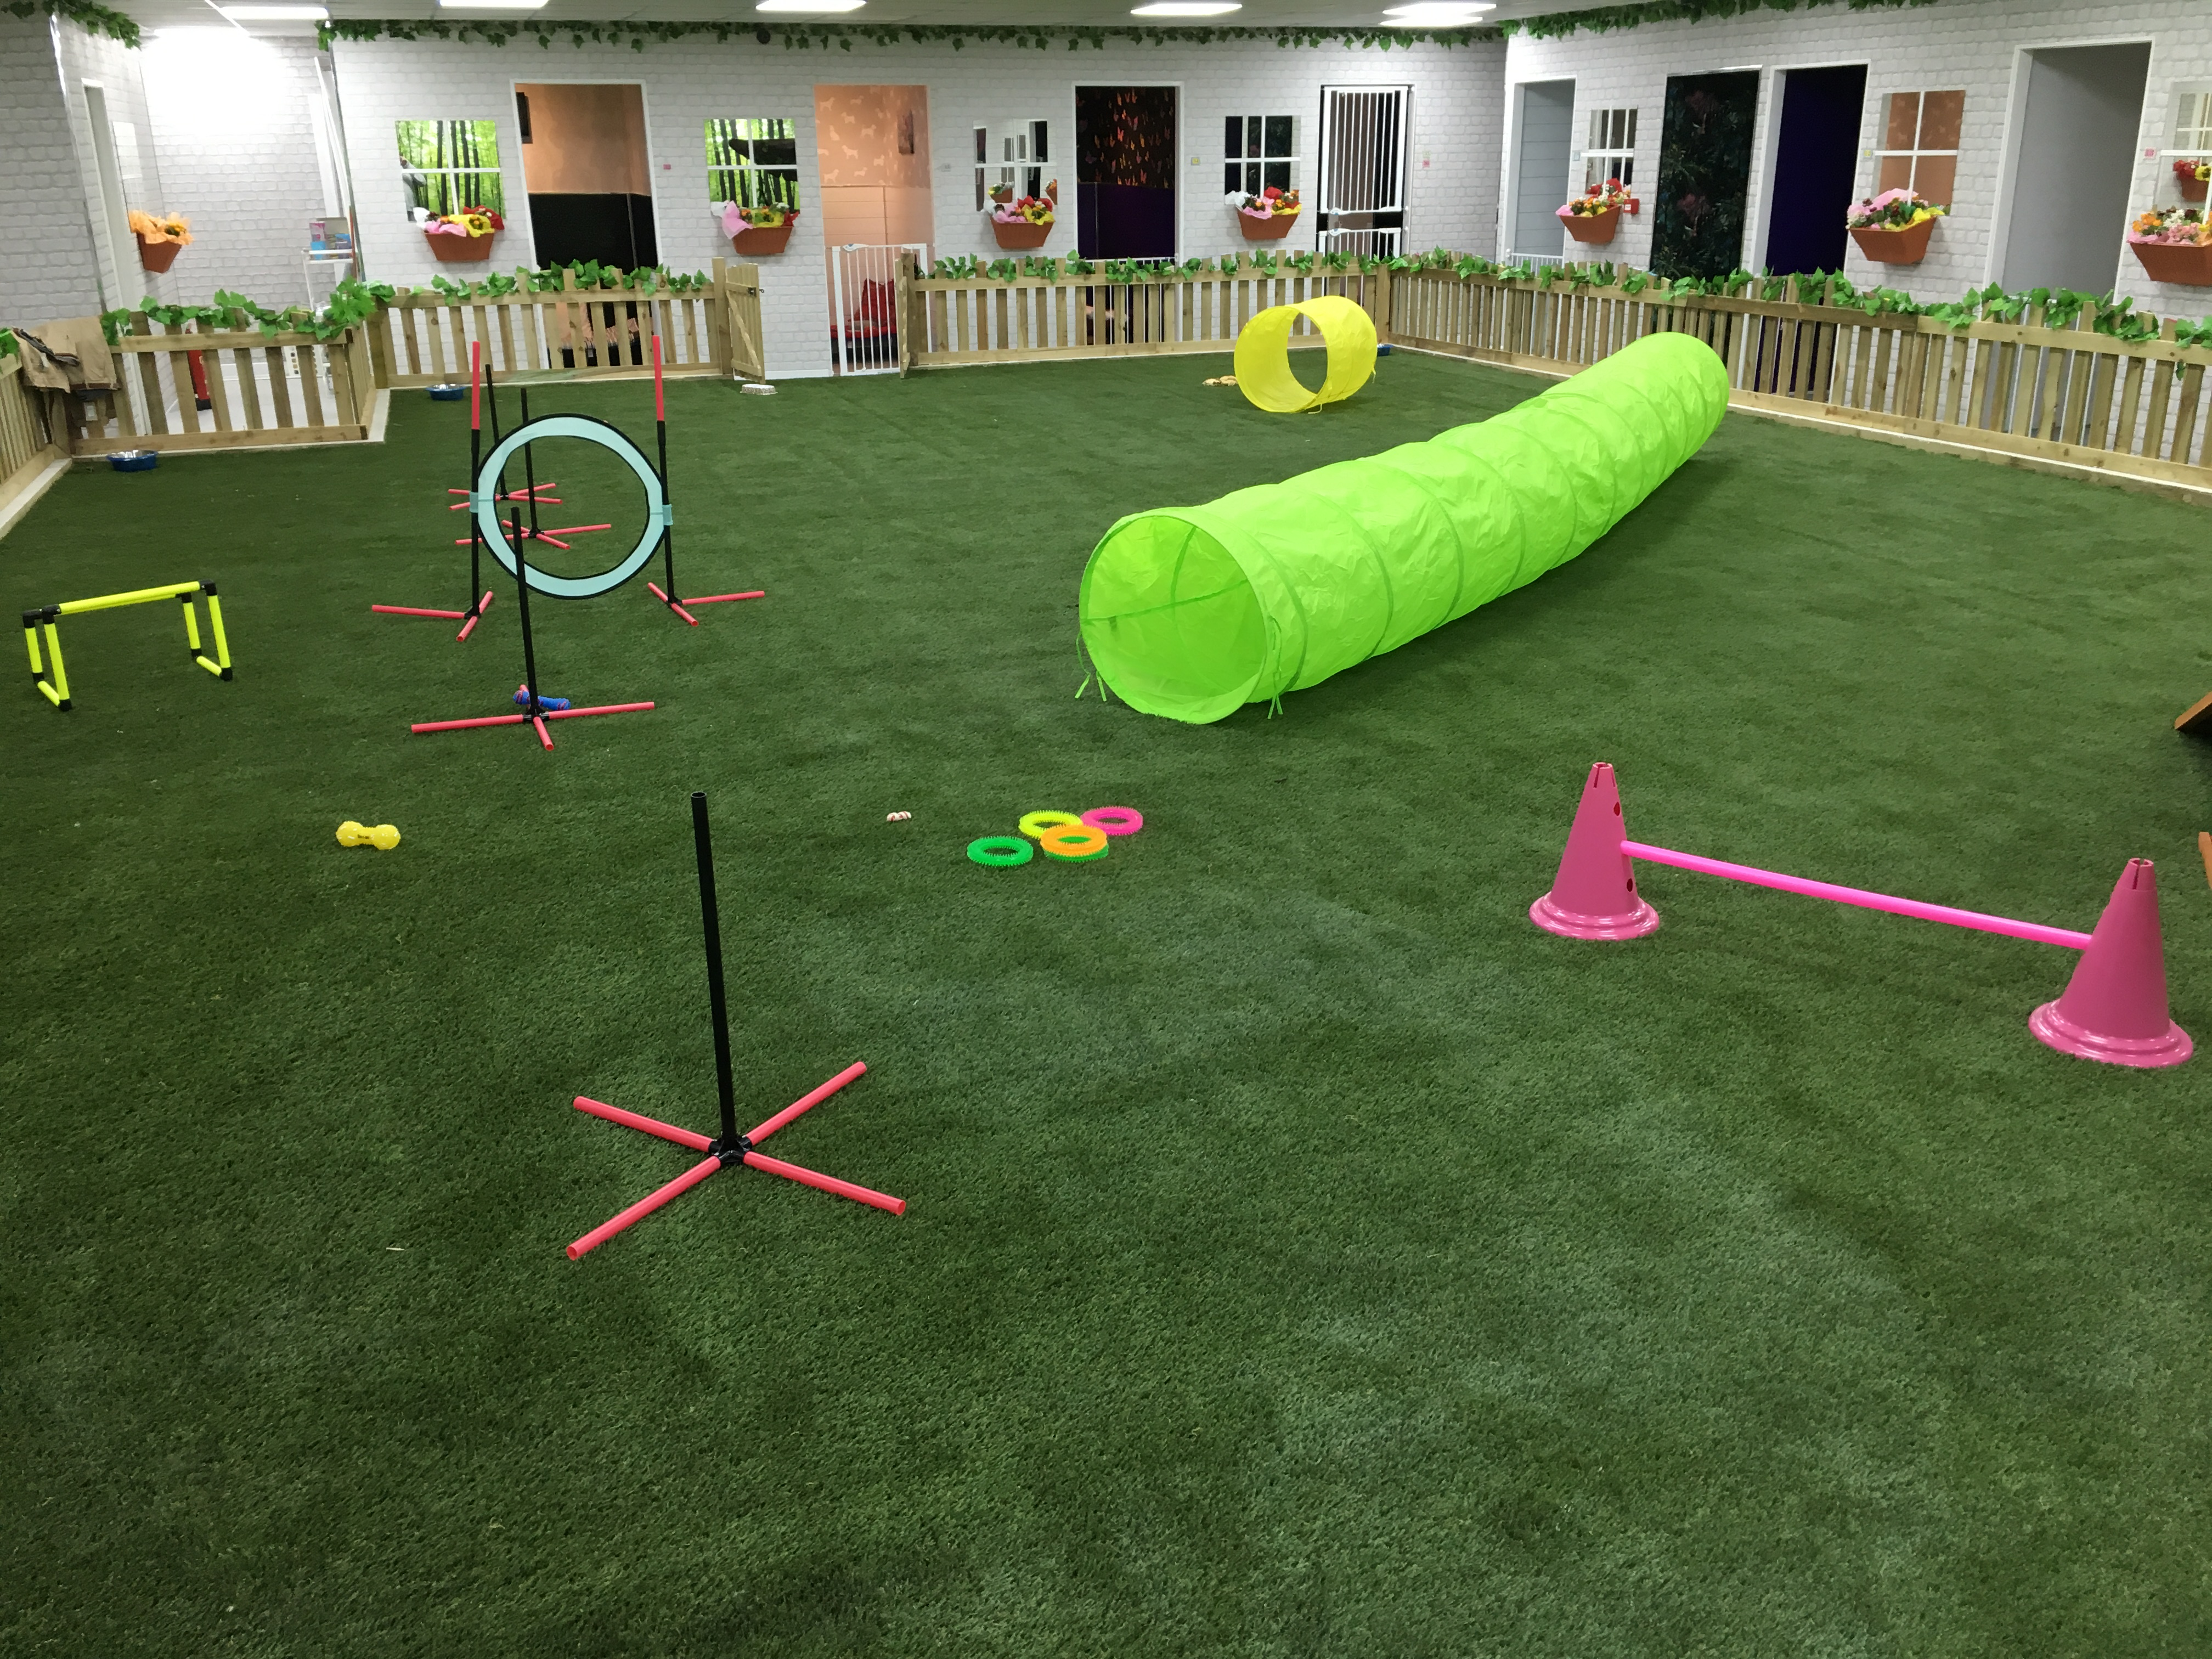 http://www.lawnworld.co.uk/wp-content/uploads/2016/10/Artificial-Grass-For-Doggy-Daycare-And-Dog-Boarding-Kennels-1